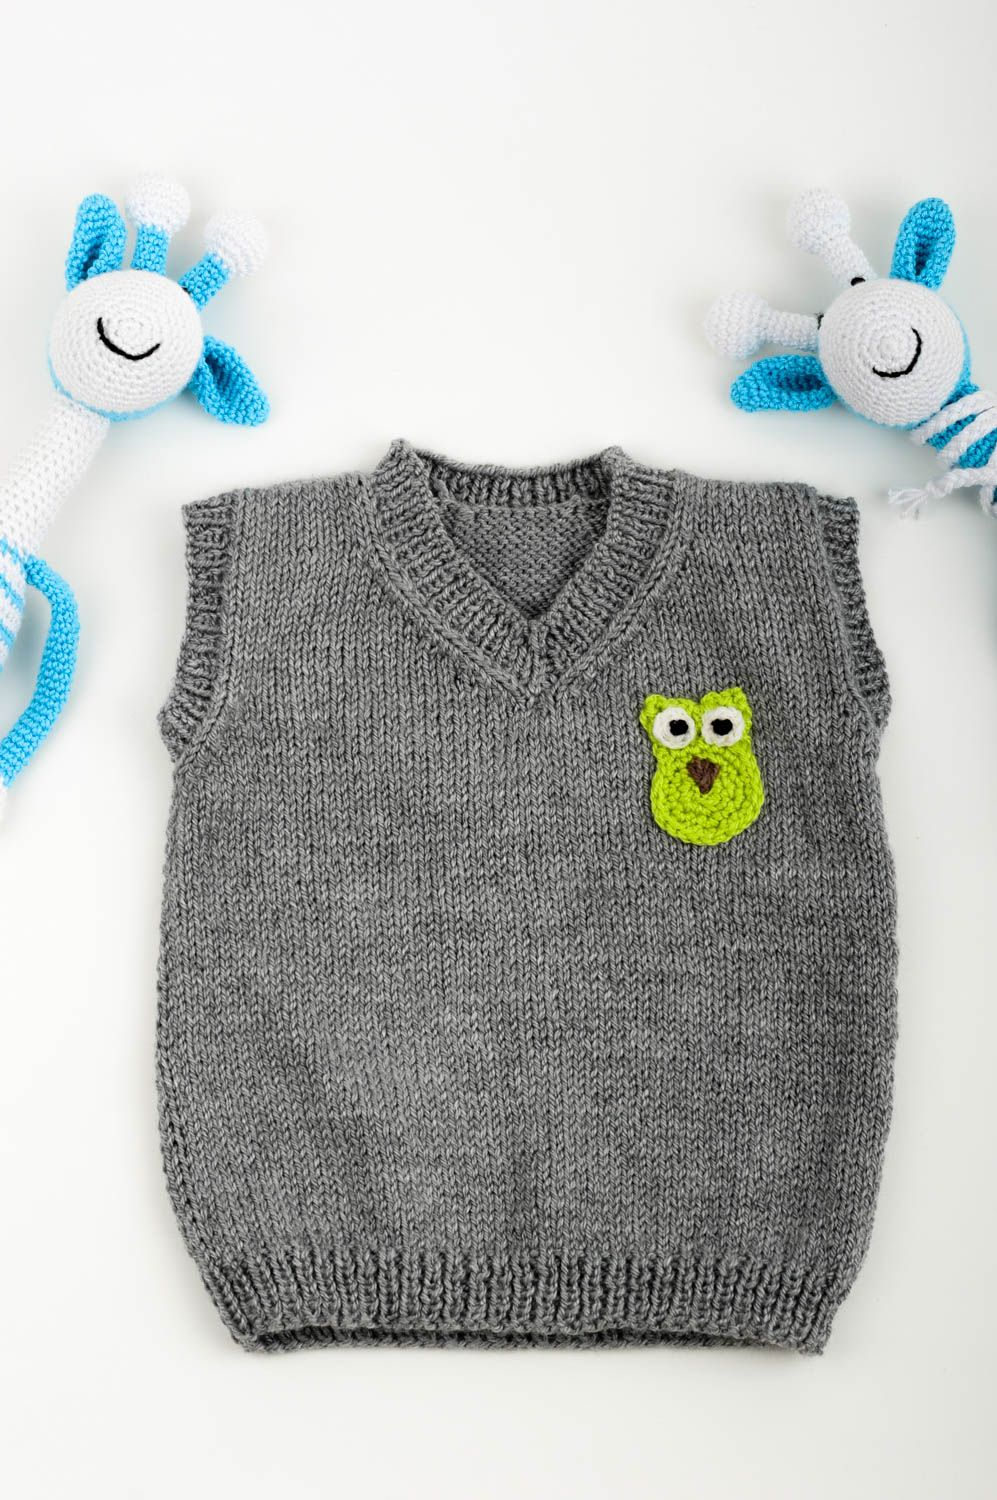 Handmade designer knitted clothes